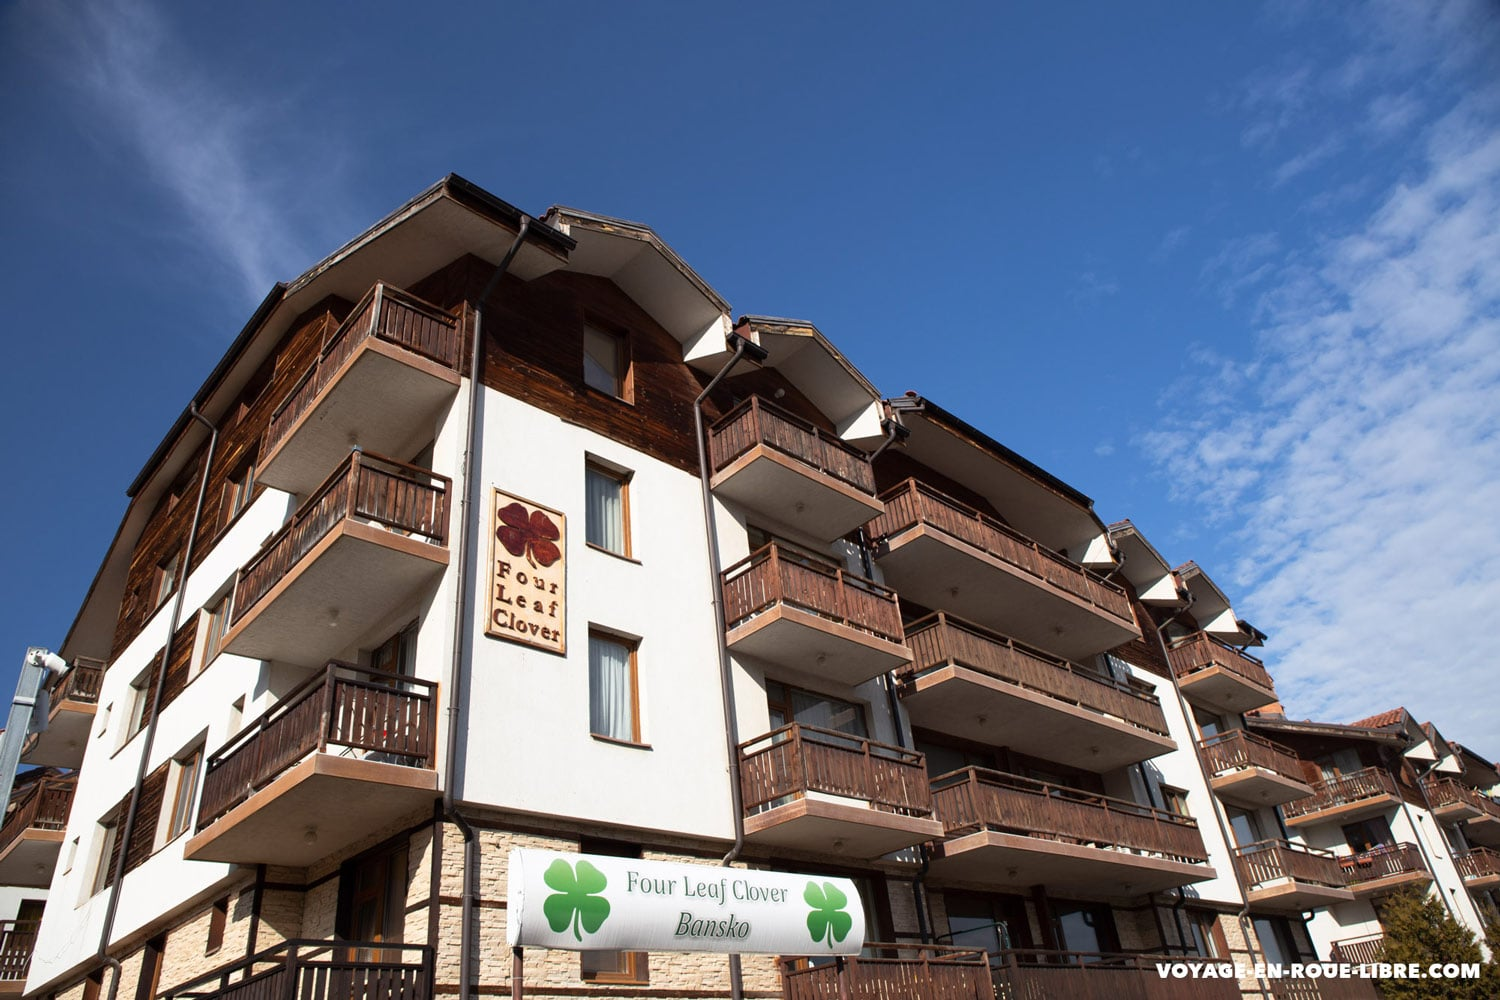 Un coliving pratique à Bansko : Le four Leaf Clover.